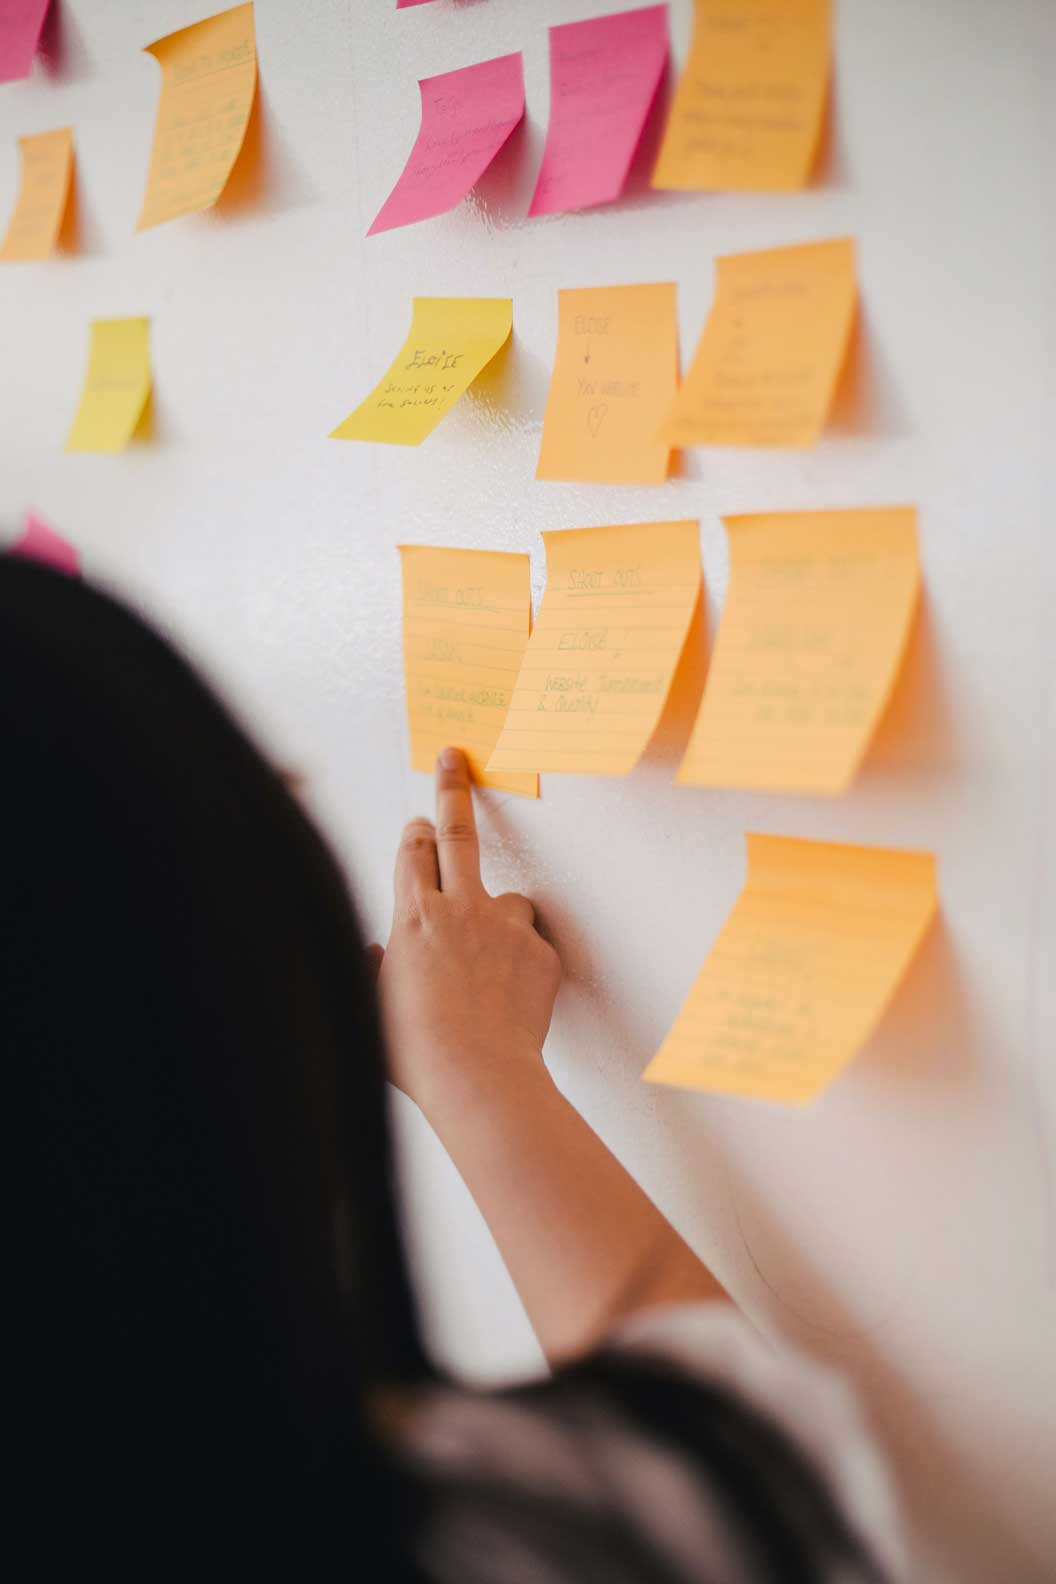 A person organizing post its on a whiteboard.